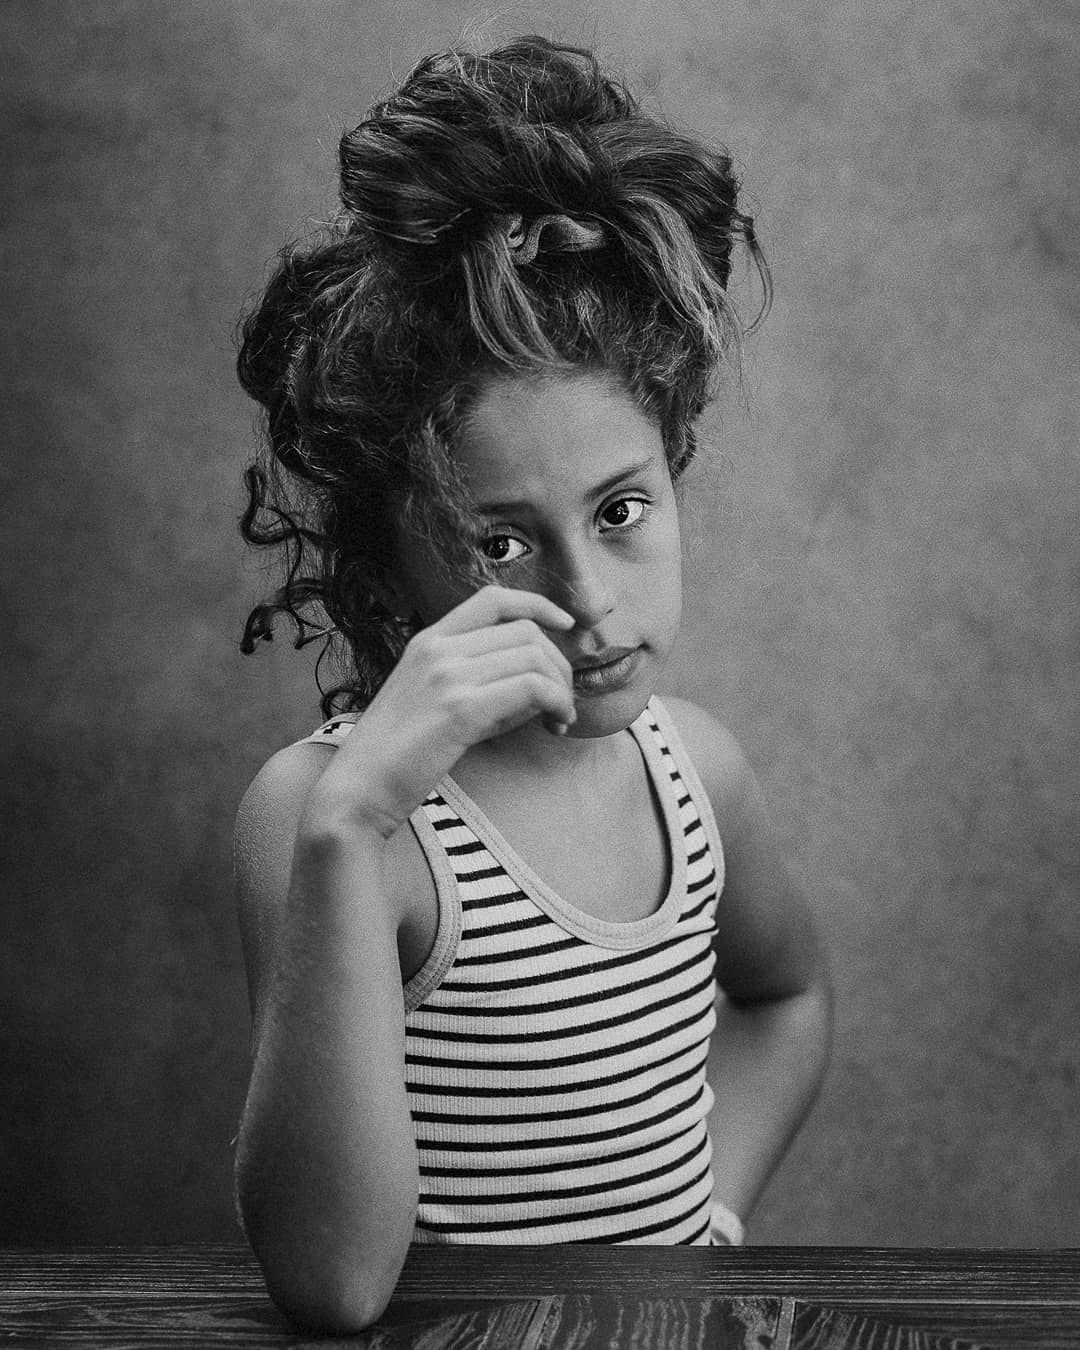 © Francisca Roura, Chile, entry, Open competition, Portraiture, 2021 Sony World Photography Awards